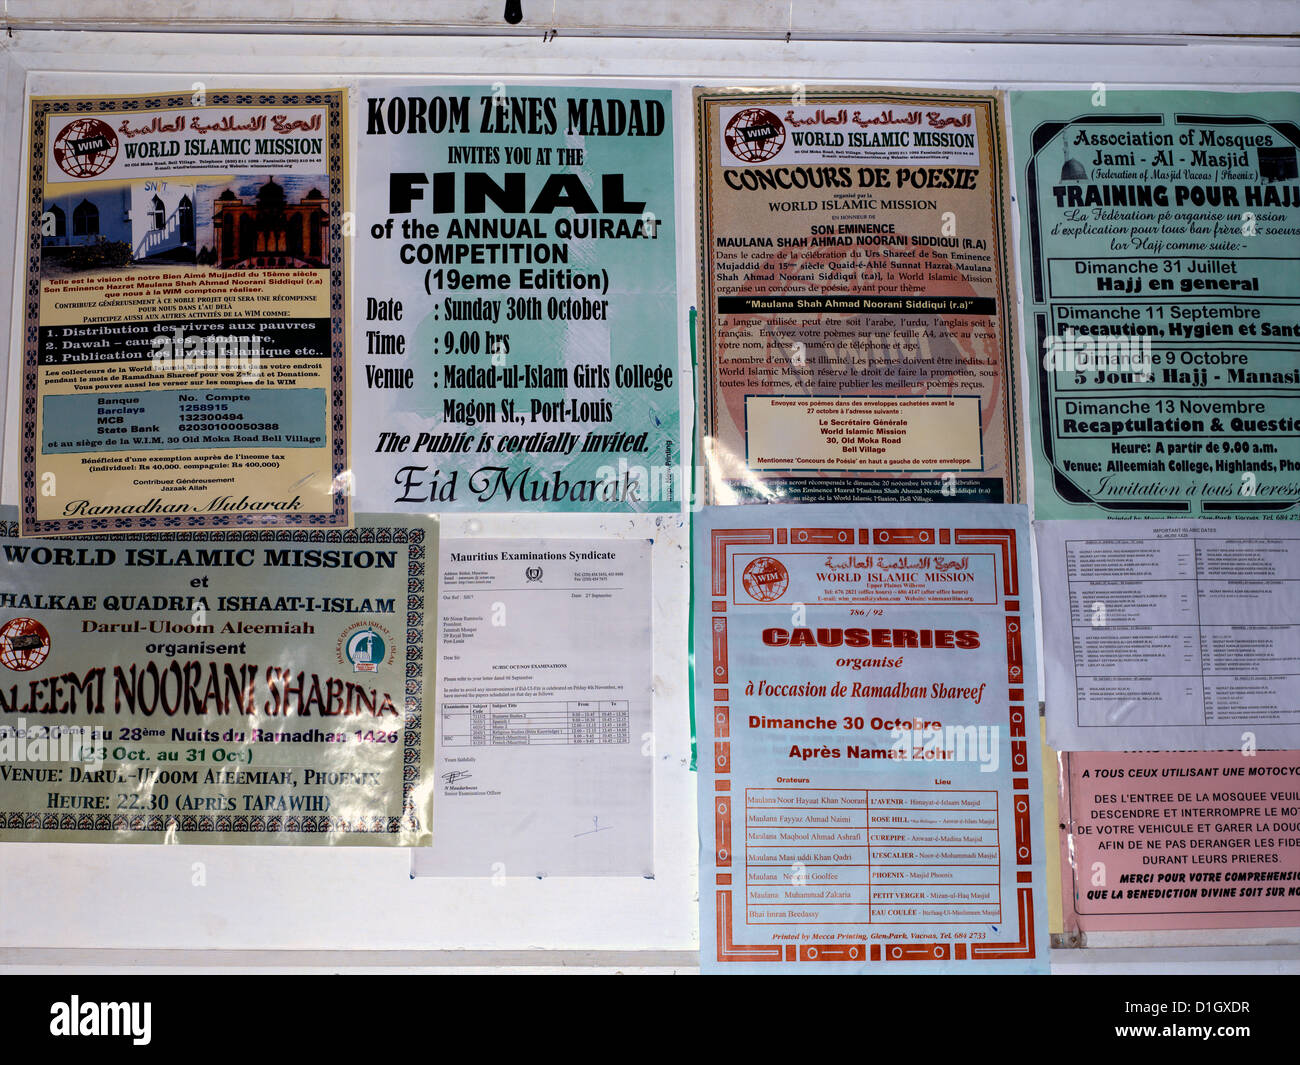 Jummah Masjid Mosque Port Louis Mauritius Notice Board World Islamic Mission and Annual Quirat Competition for Eid - Stock Image